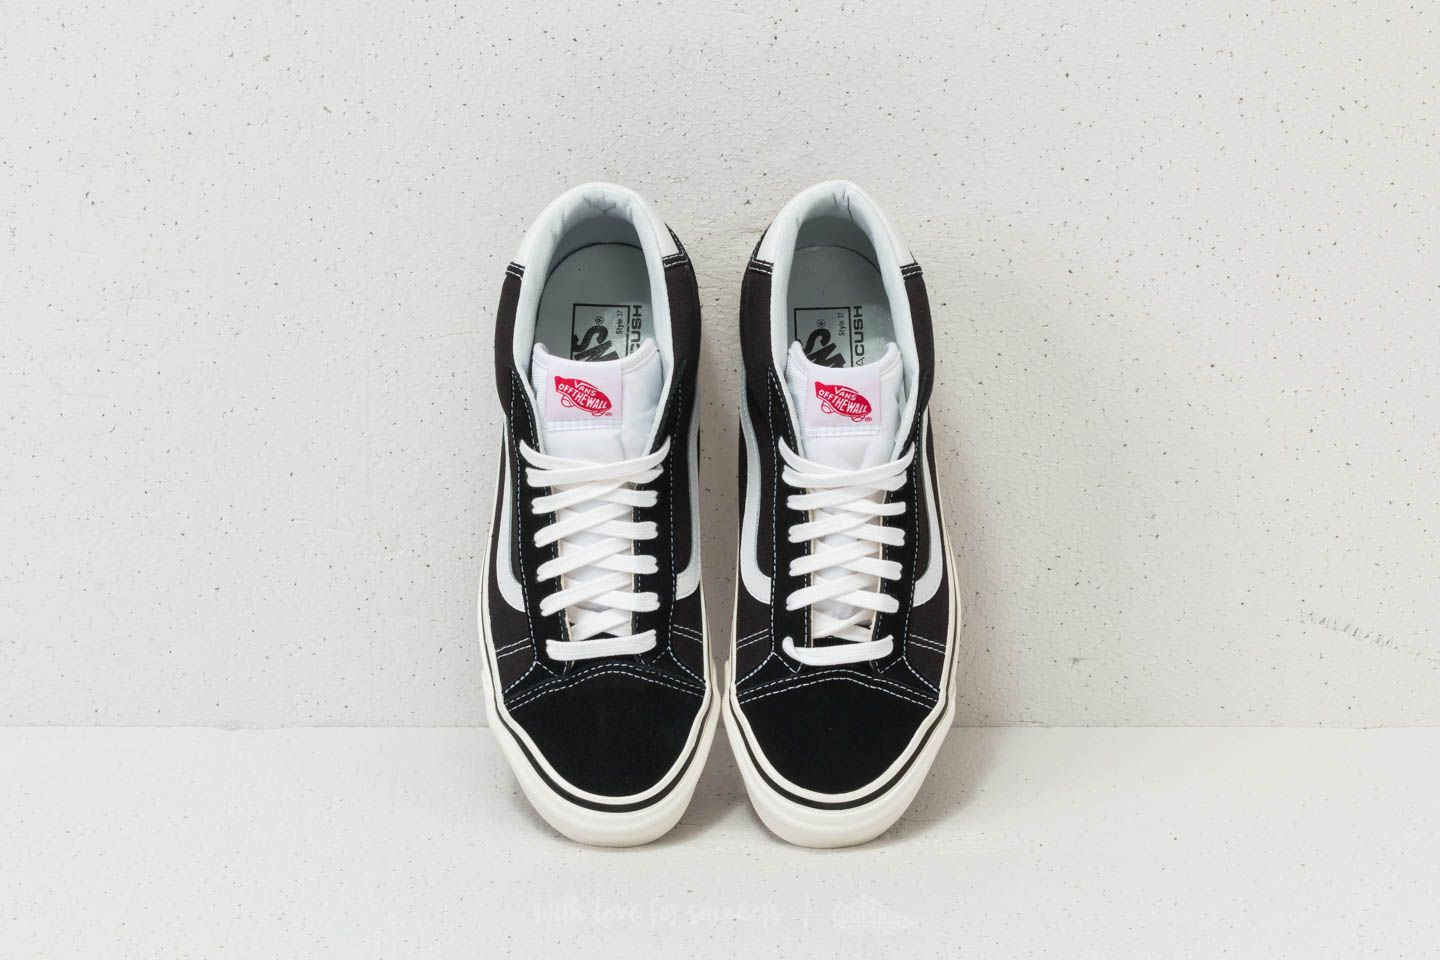 Vans Mid Skool 37 DX (Anaheim Factory) Black White | Footshop